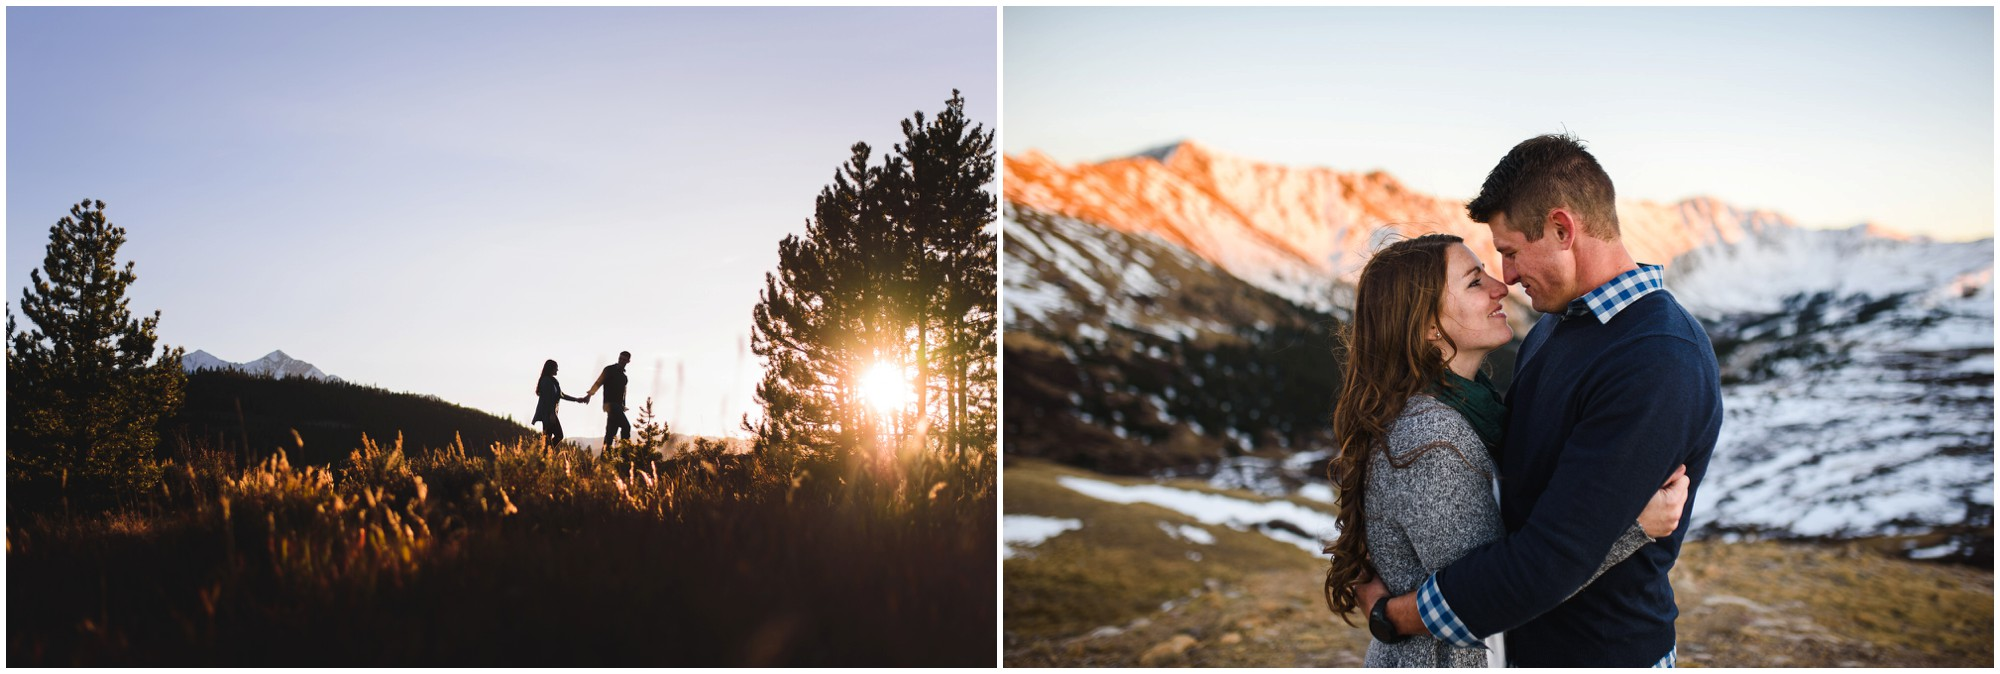 89-loveland-pass-Dillon-engagement-photography.jpg